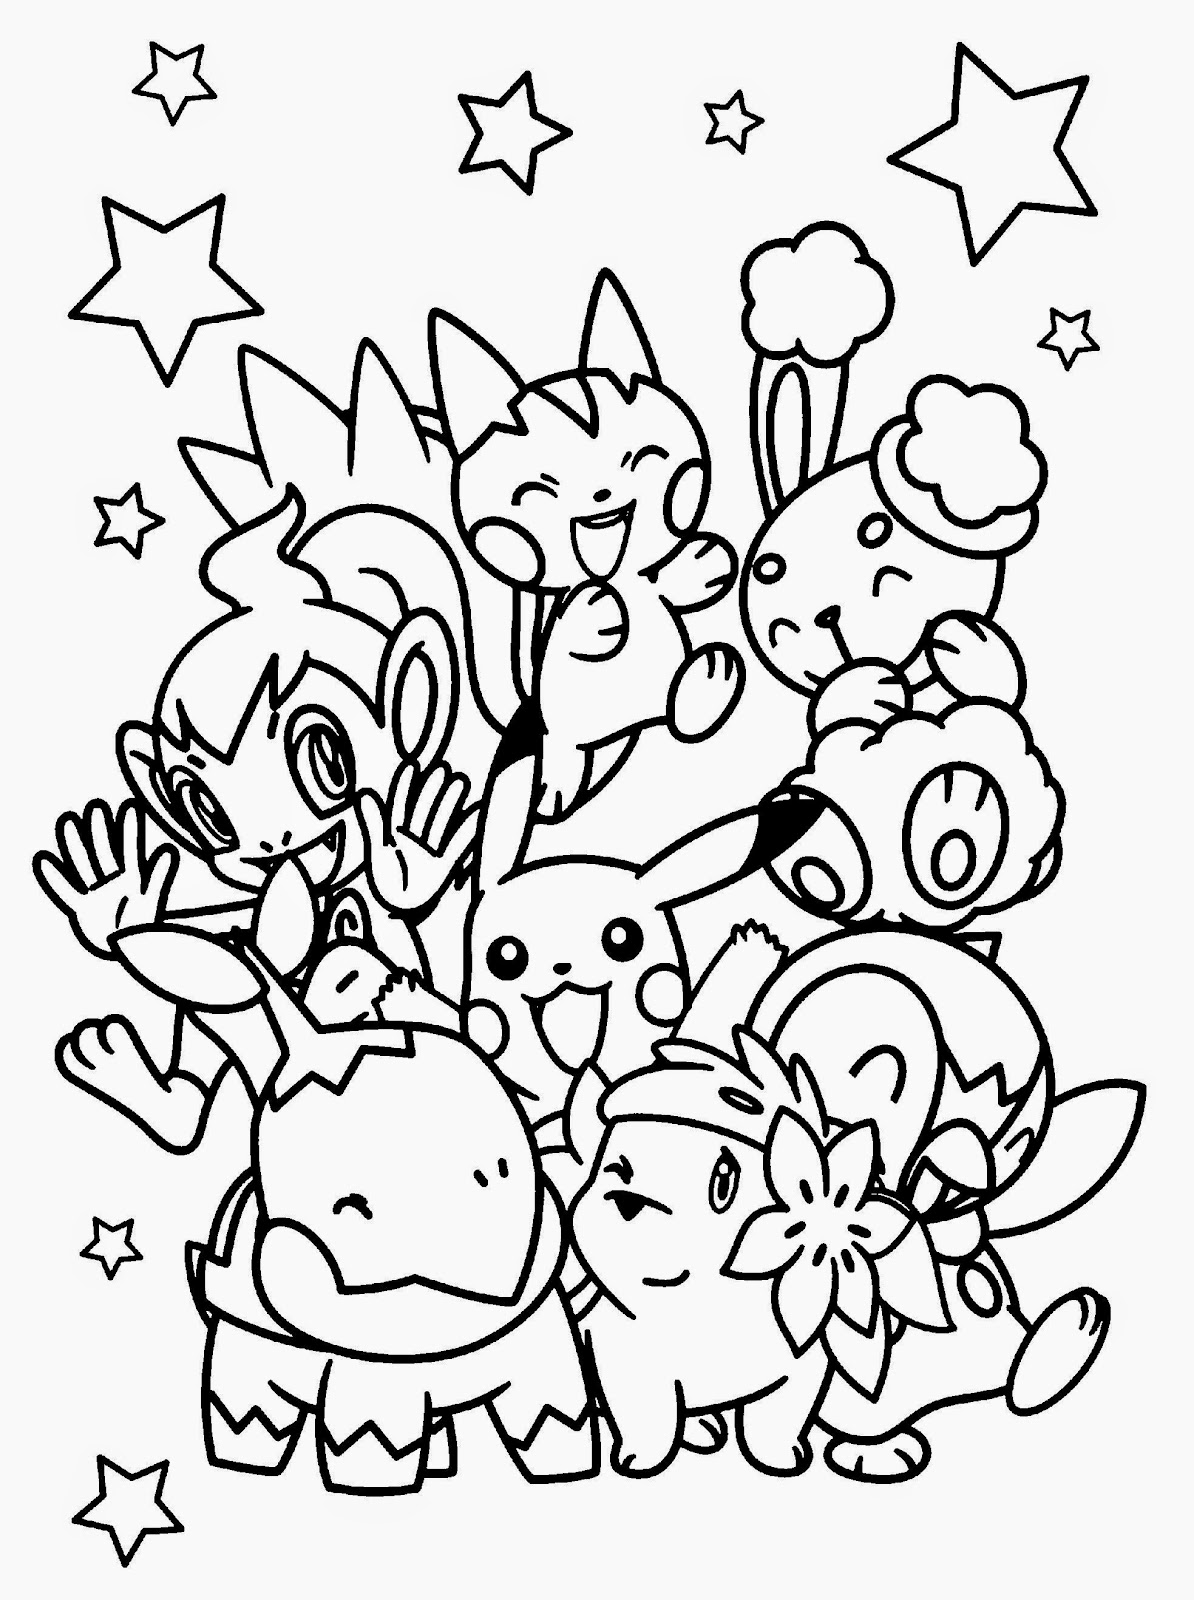 Pokemon coloring sheet free coloring sheet for Coloring pages t